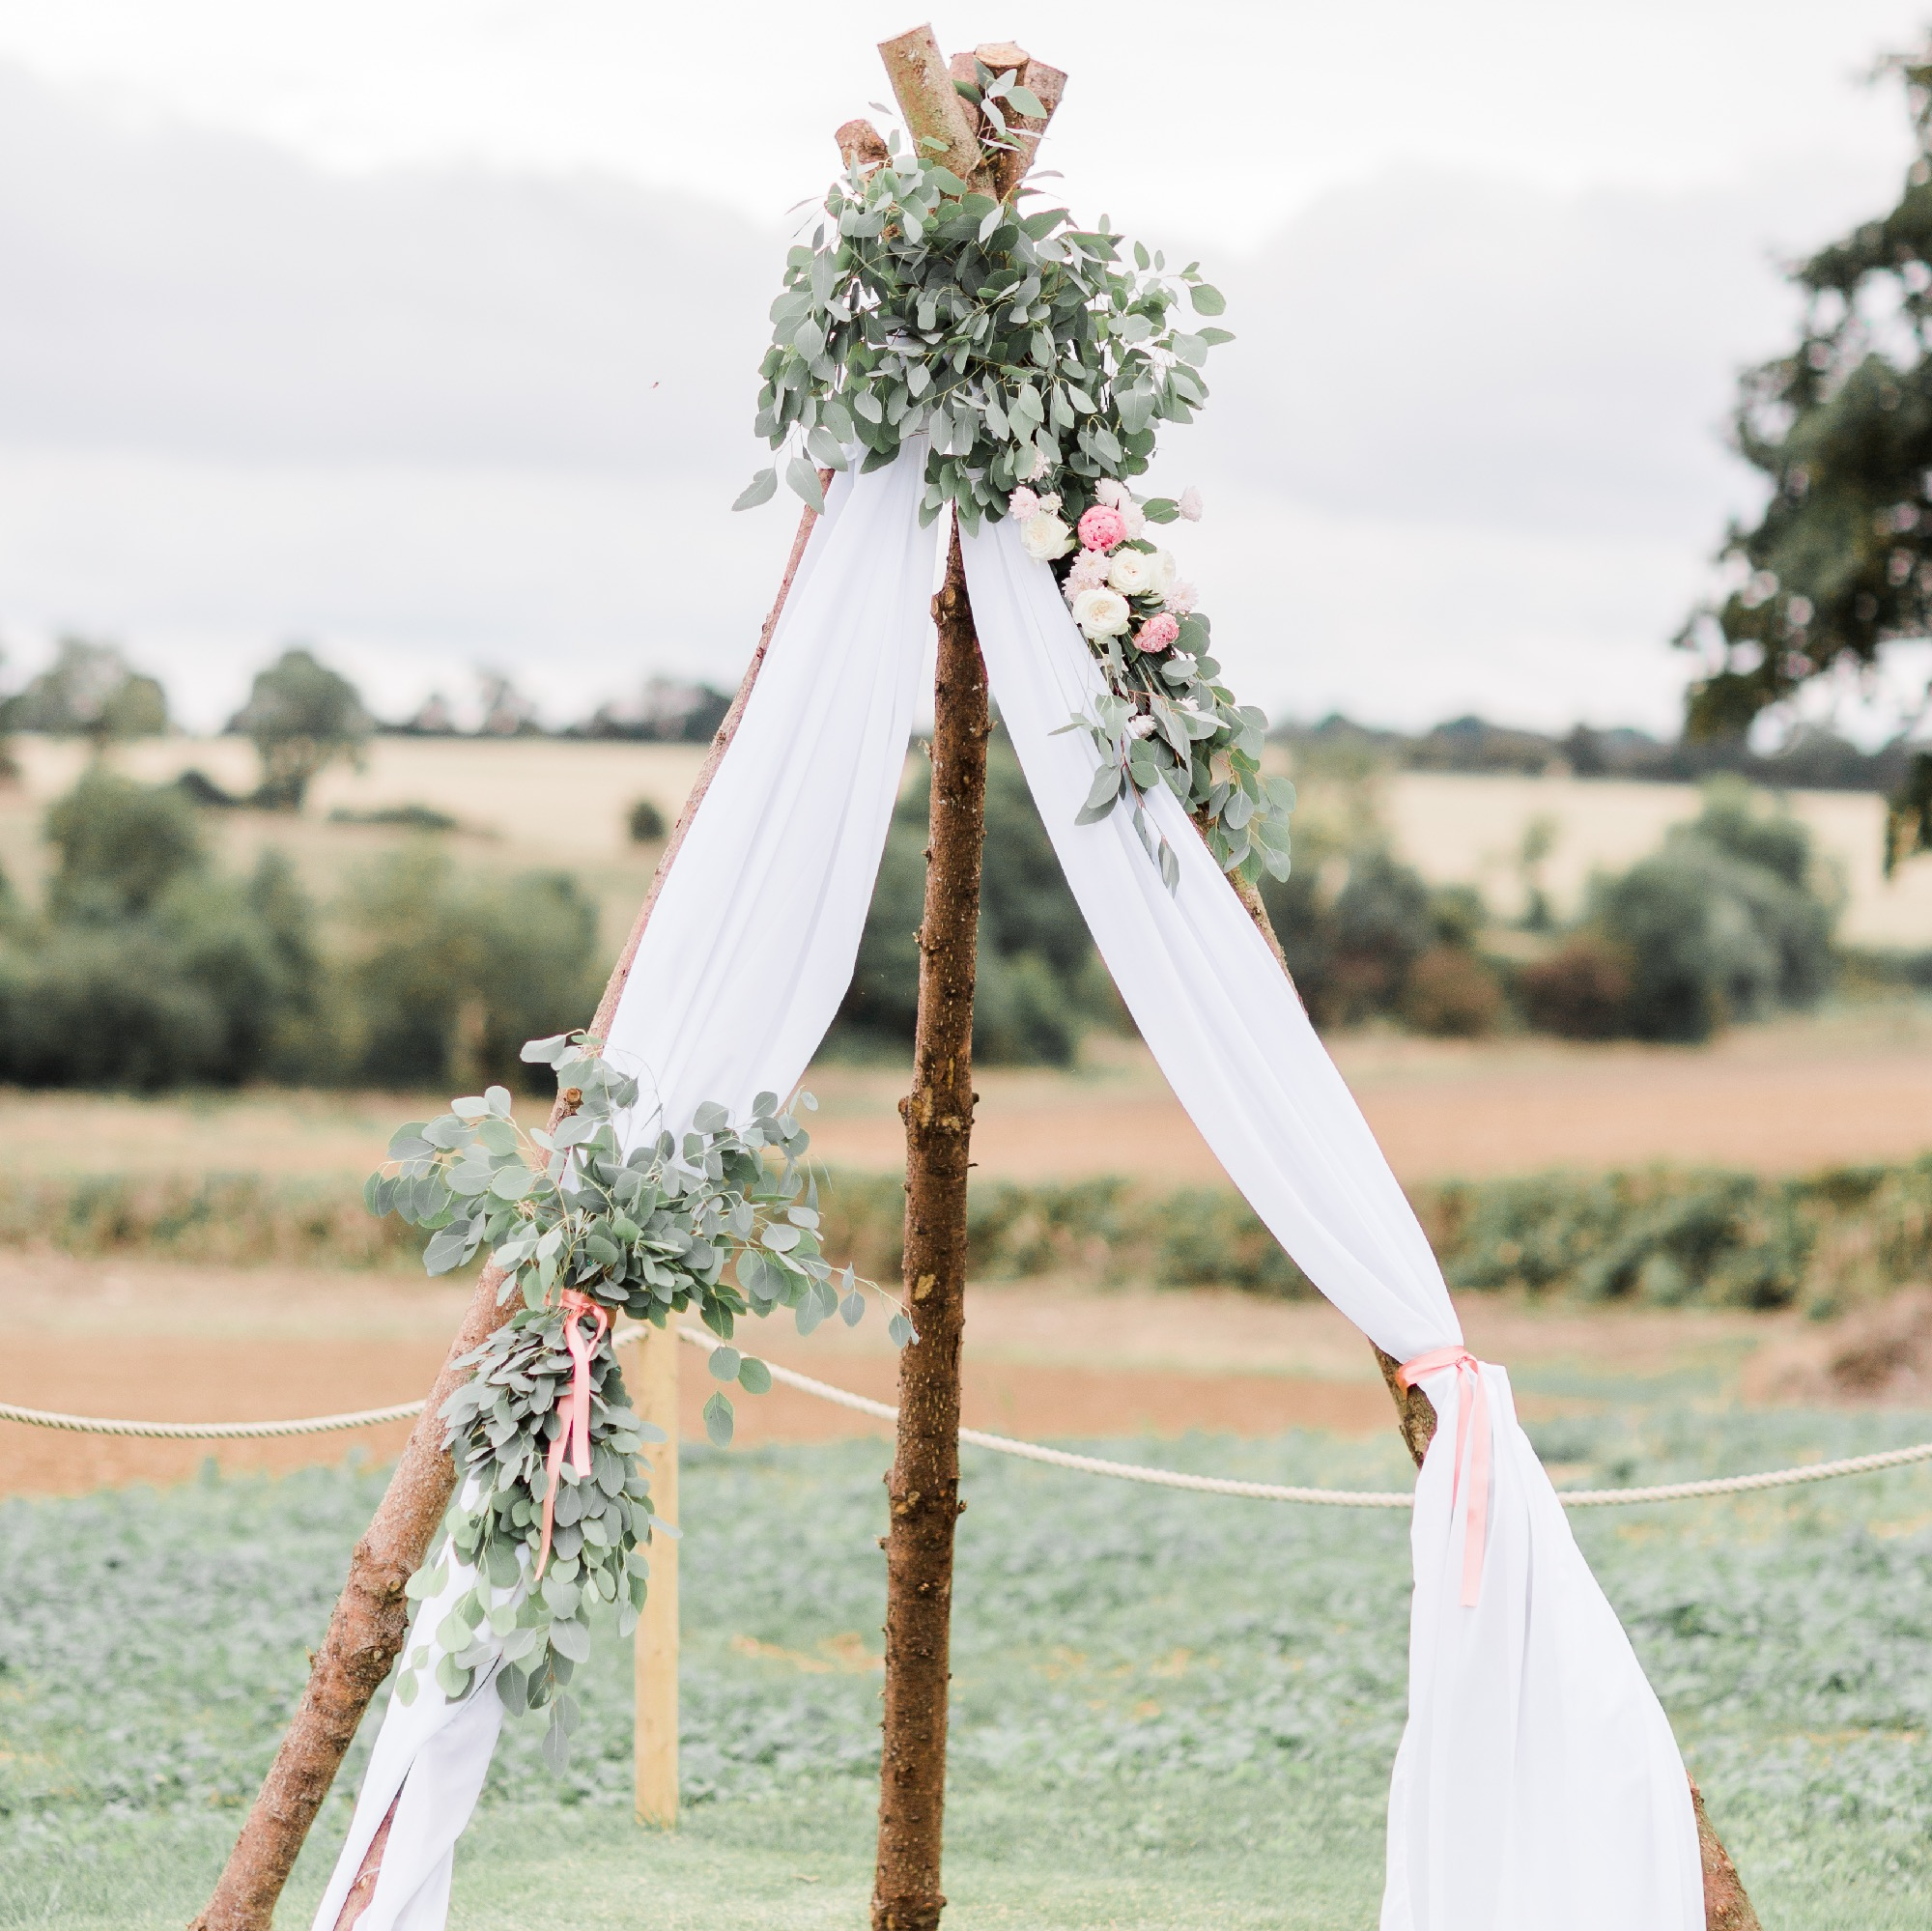 MINI TIPI BACKDROP ARCH